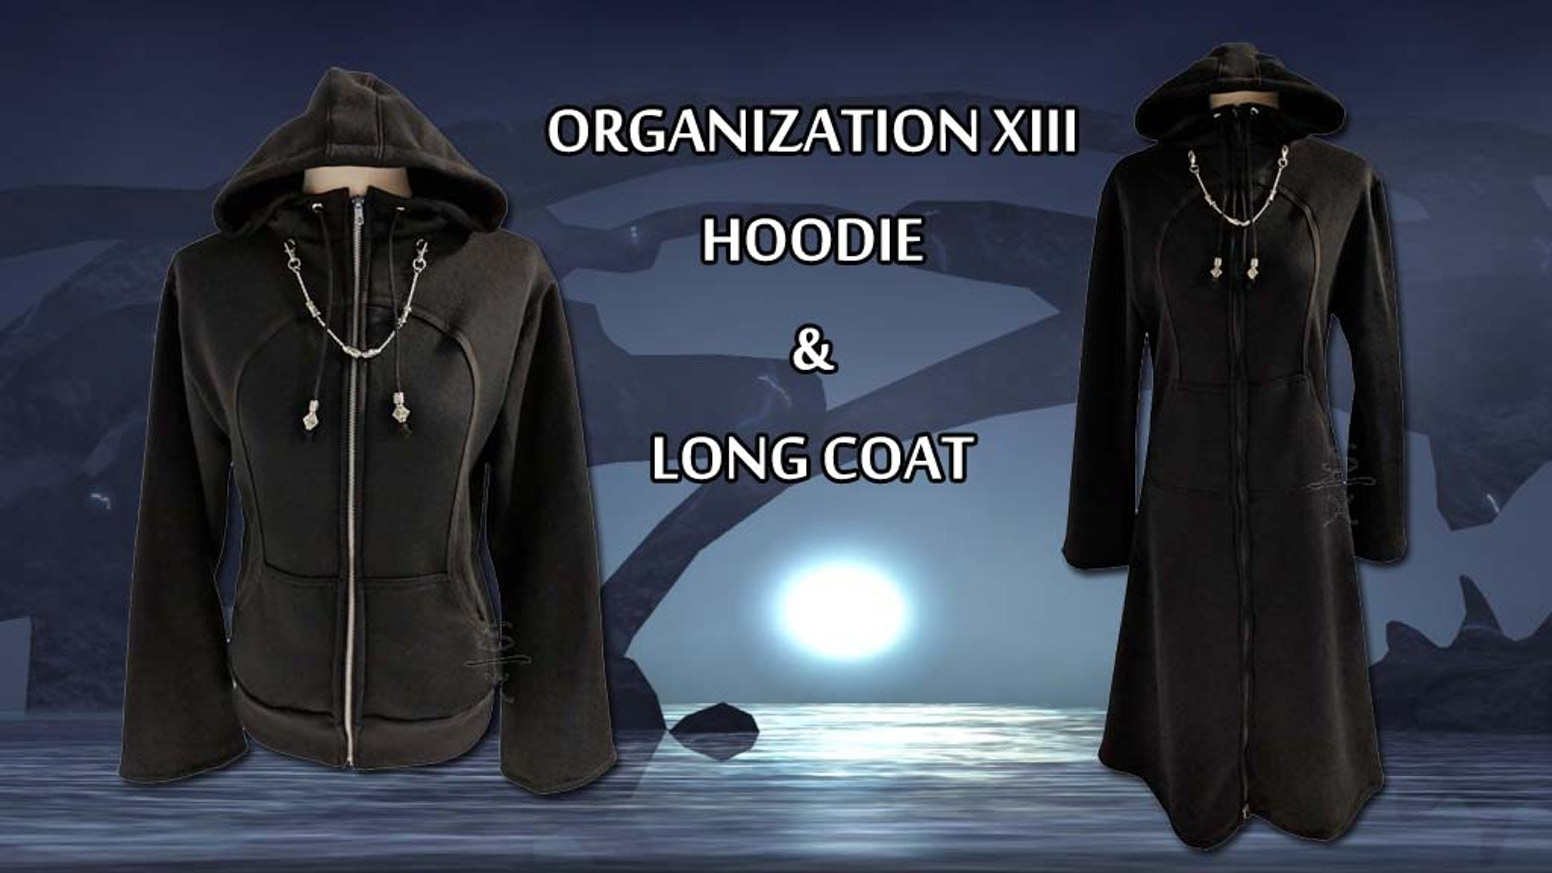 Blending cosplay with casual fashion, this Kingdom Hearts Organization XIII inspired hoodie and long coat is perfect for everyday wear.